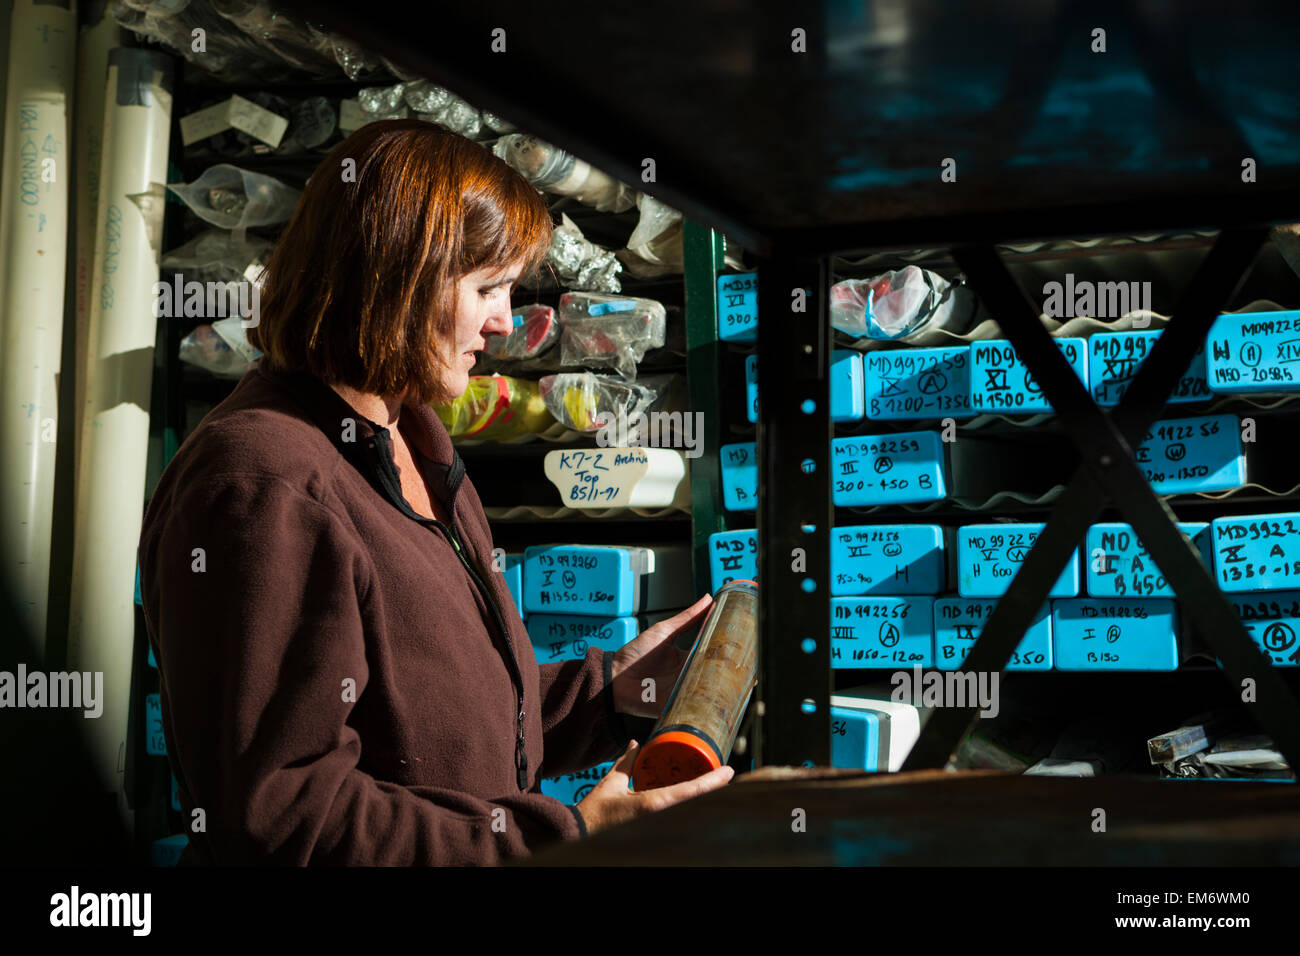 A woman inspects sediment cores at a sedimentology laboratory in Boulder, Colorado. - Stock Image